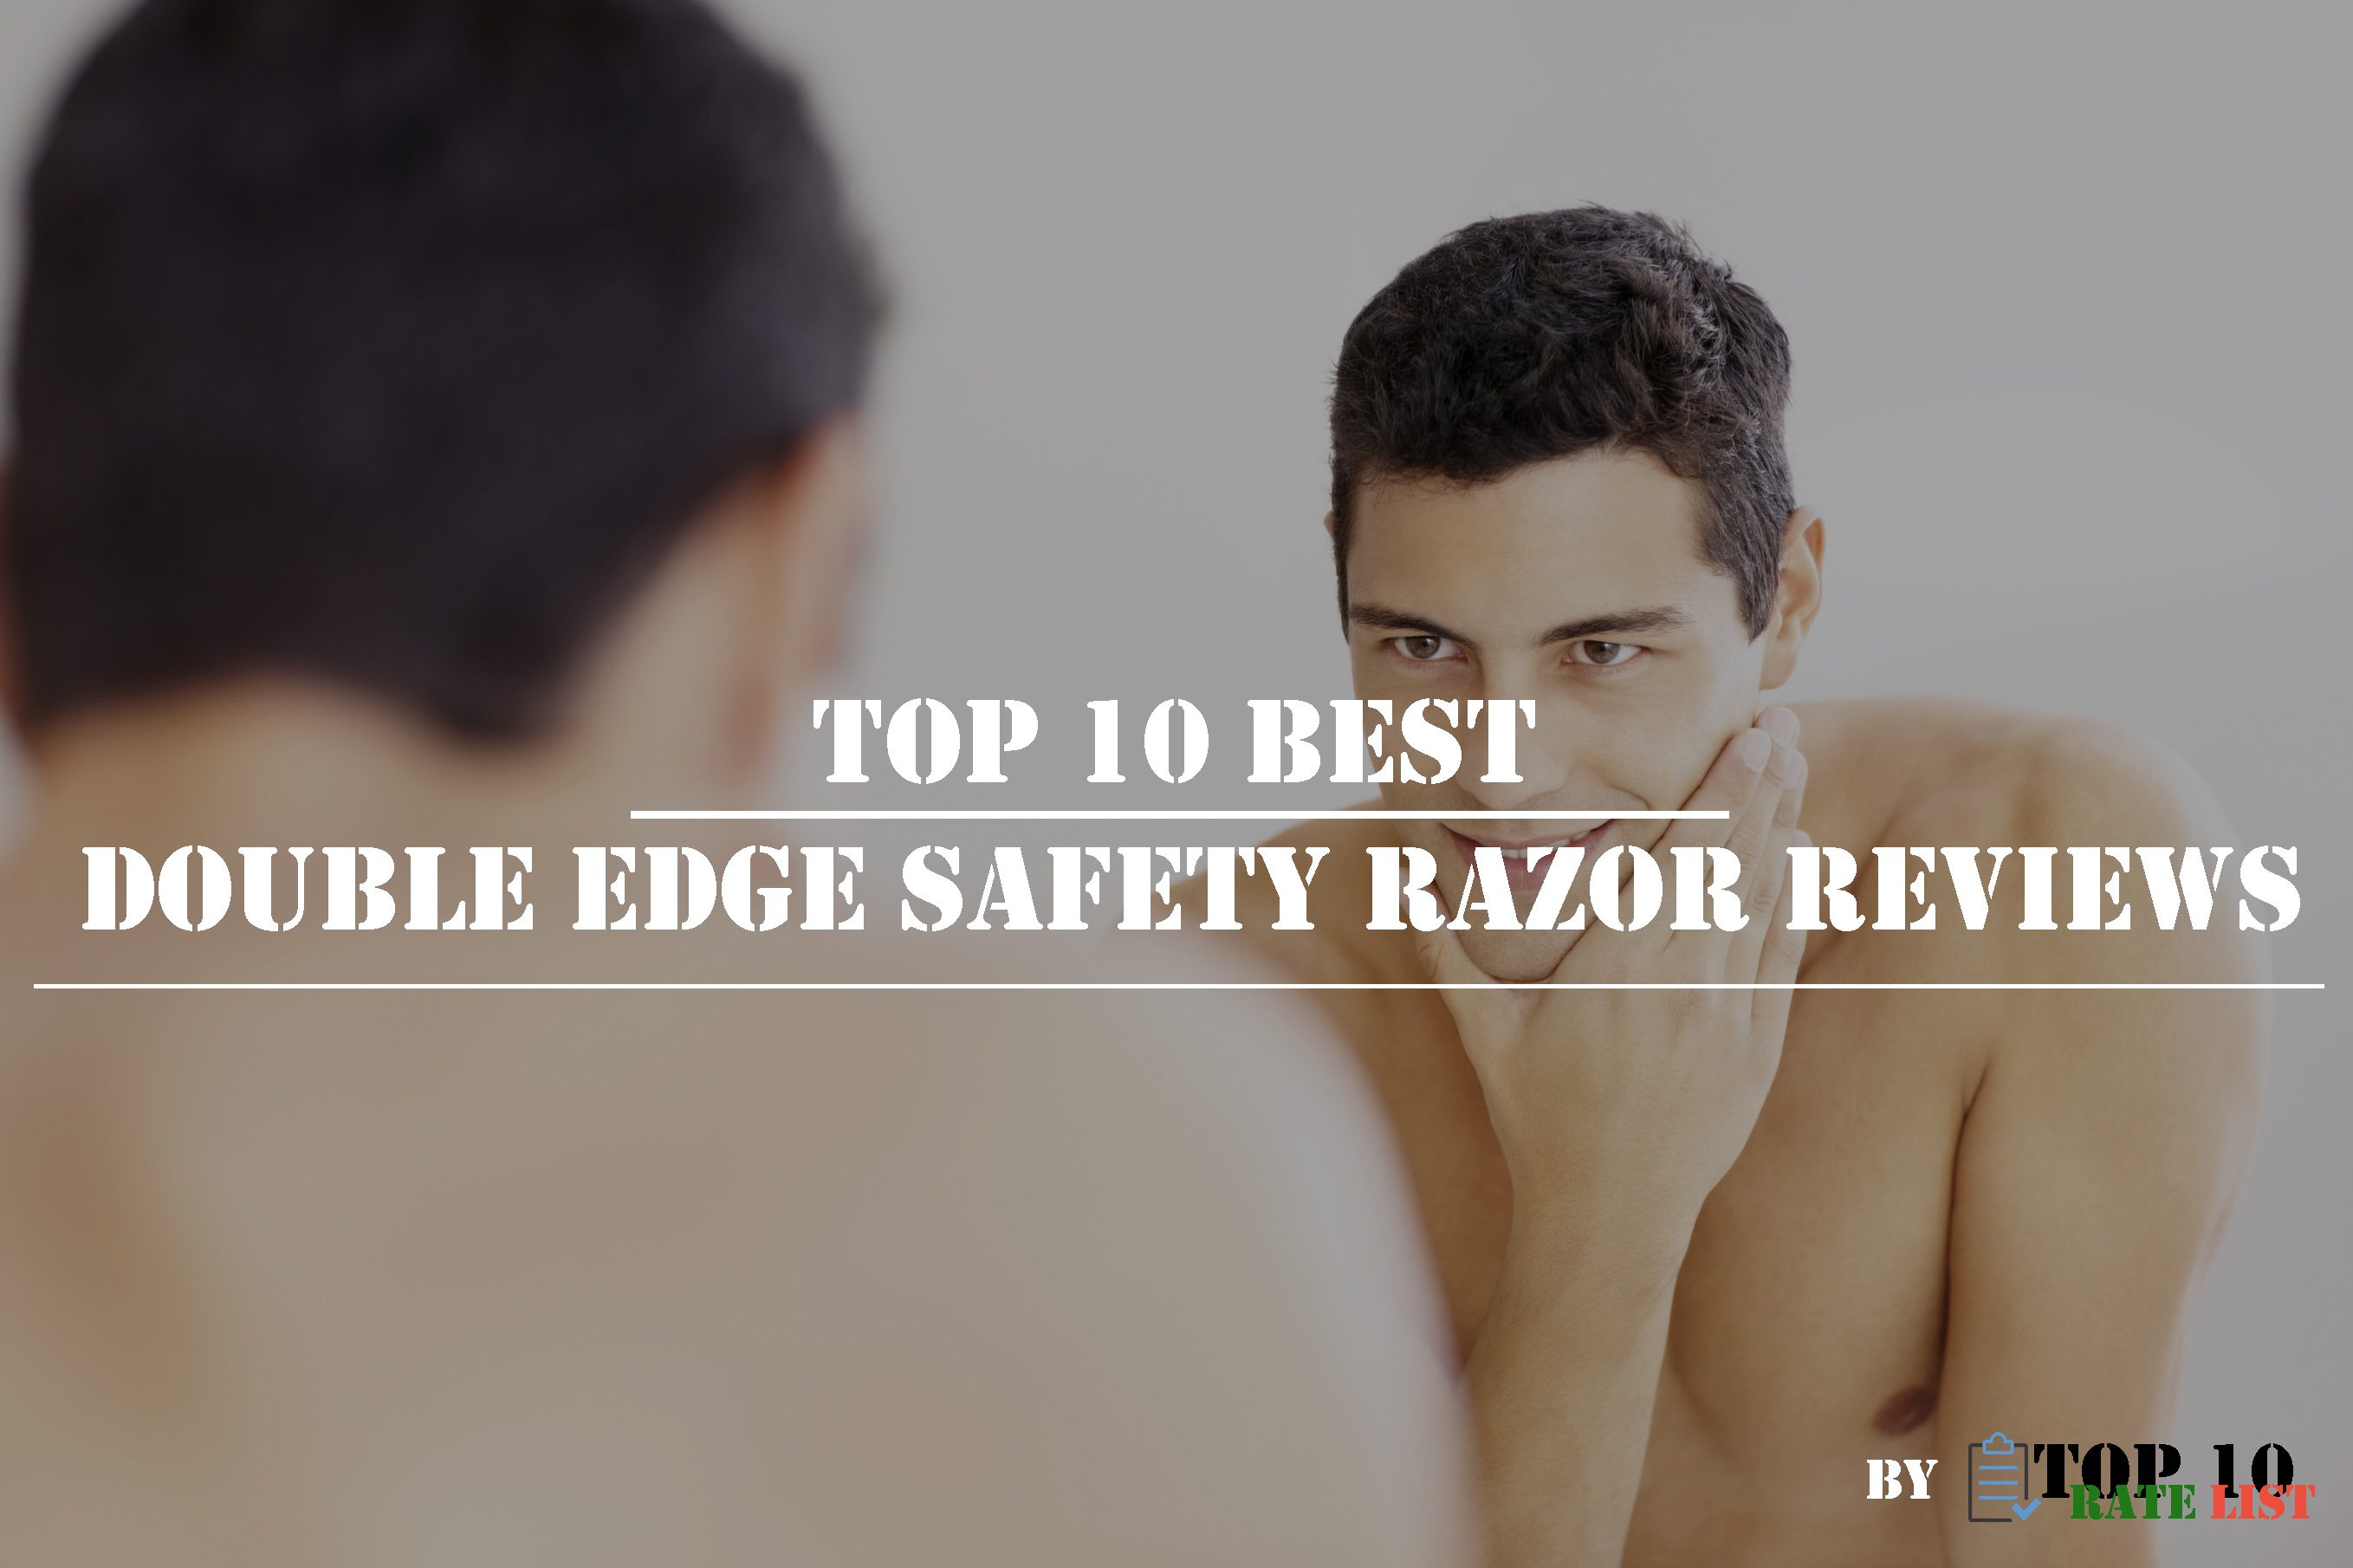 Top-10-Best-Double-Edge-Safety-Razor-Reviews